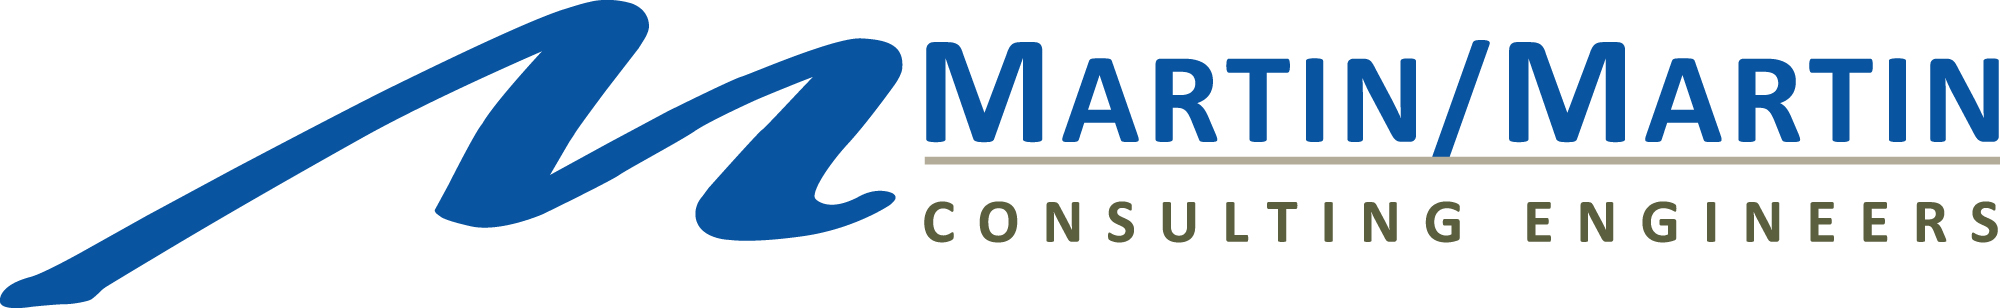 Martin/Martin Consulting Engineers